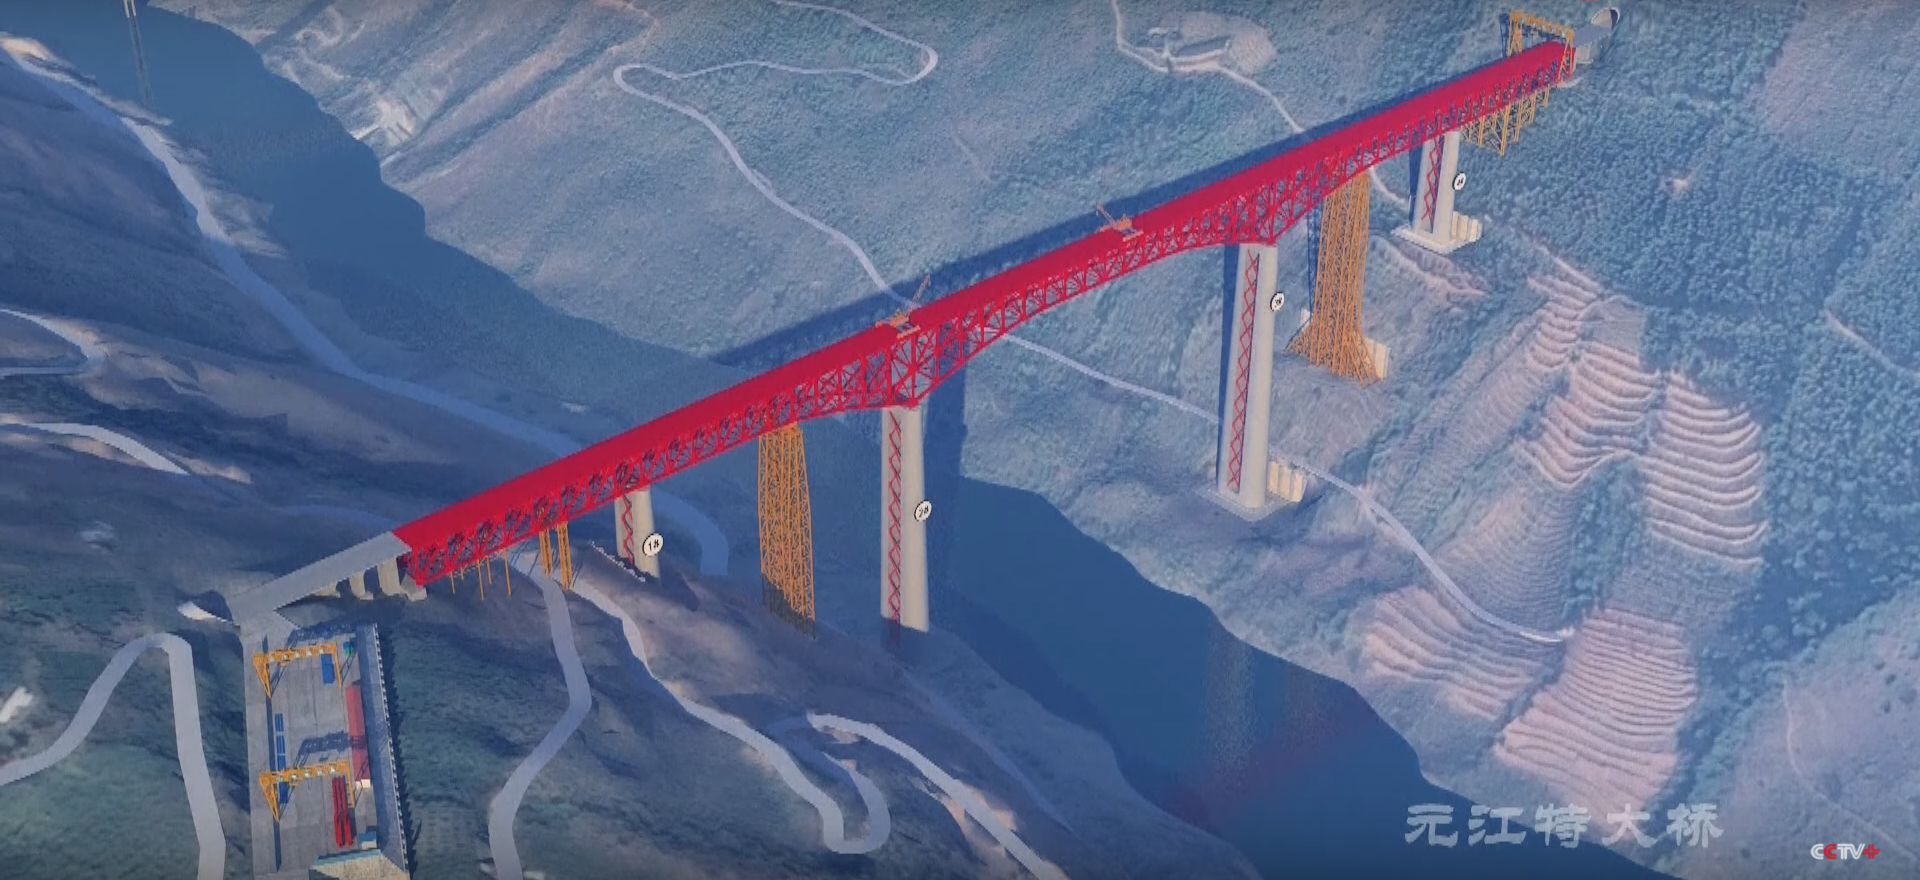 Construction starts on Chinese rail bridge with 154m-tall towers image